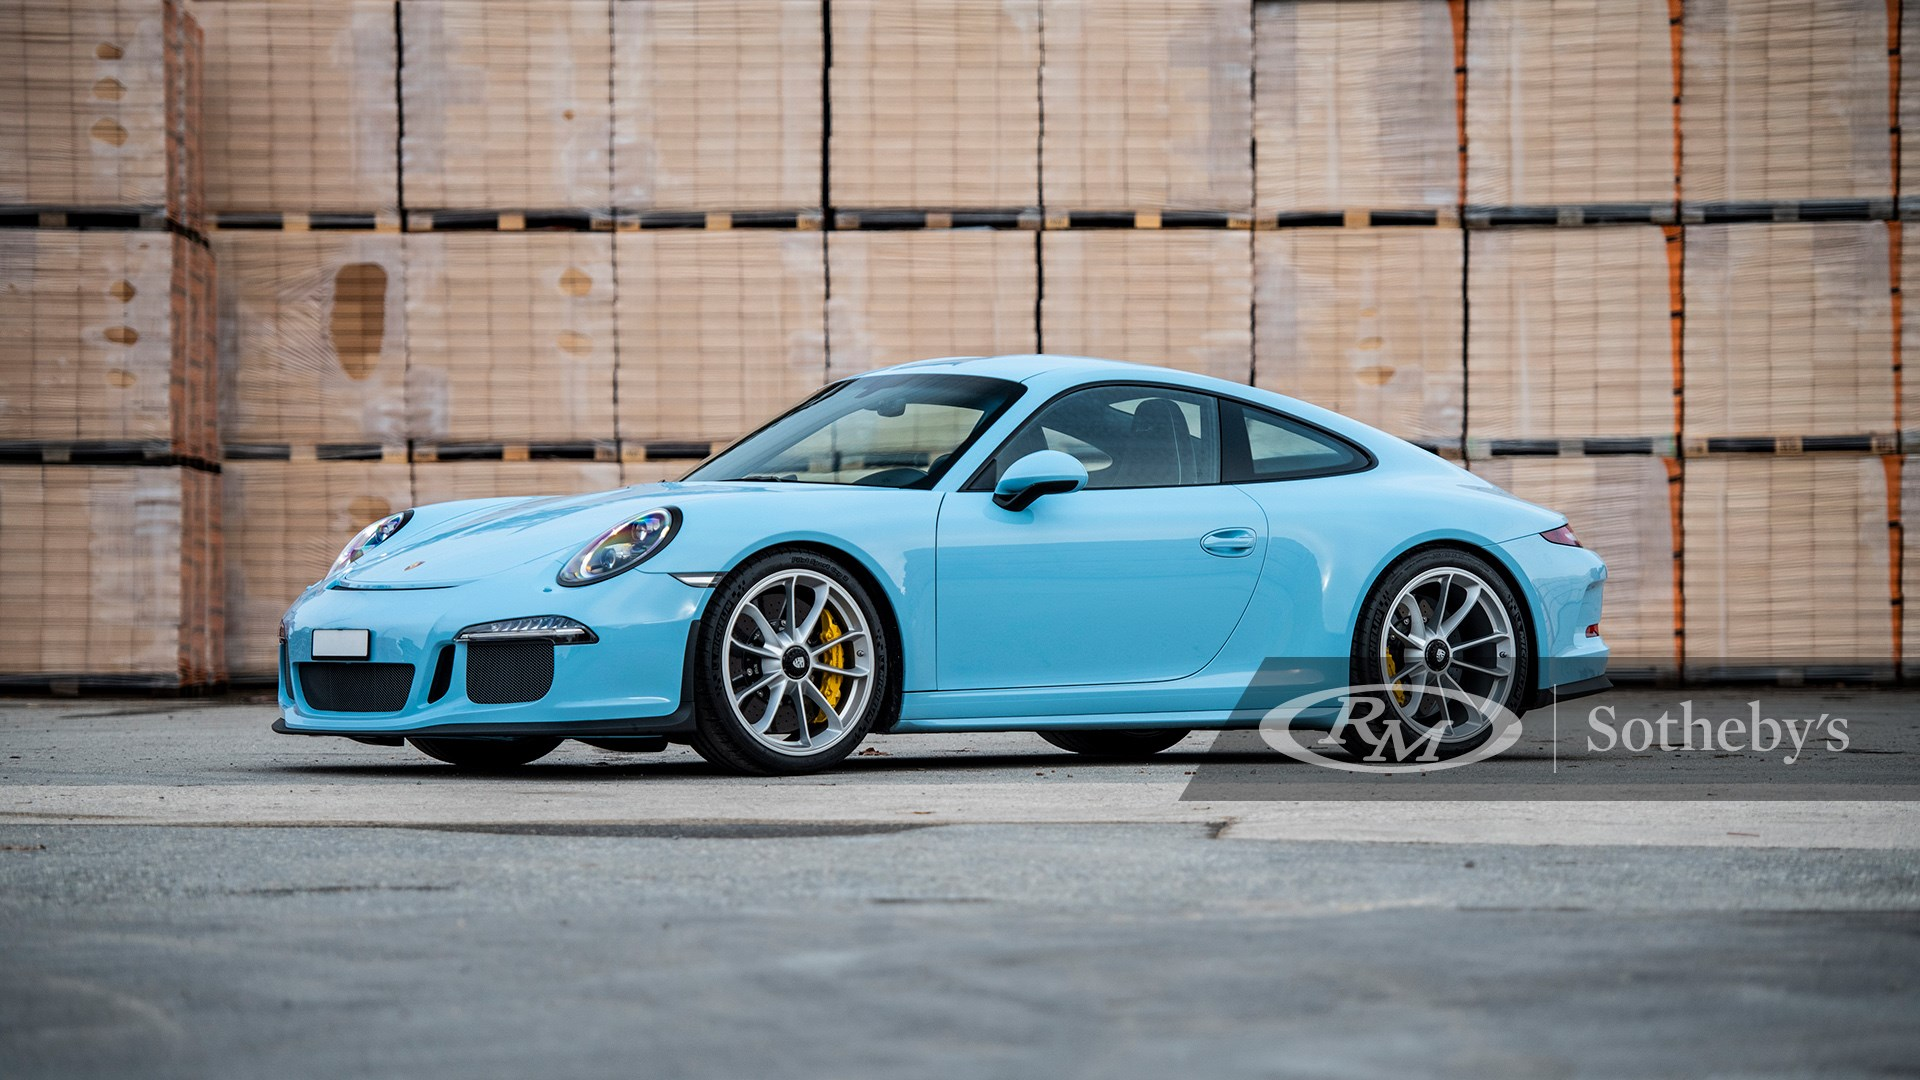 Paint-to-Sample Gulf Blue 2016 Porsche 911 R available at RM Sotheby's Online Only Open Roads February Auction 2021